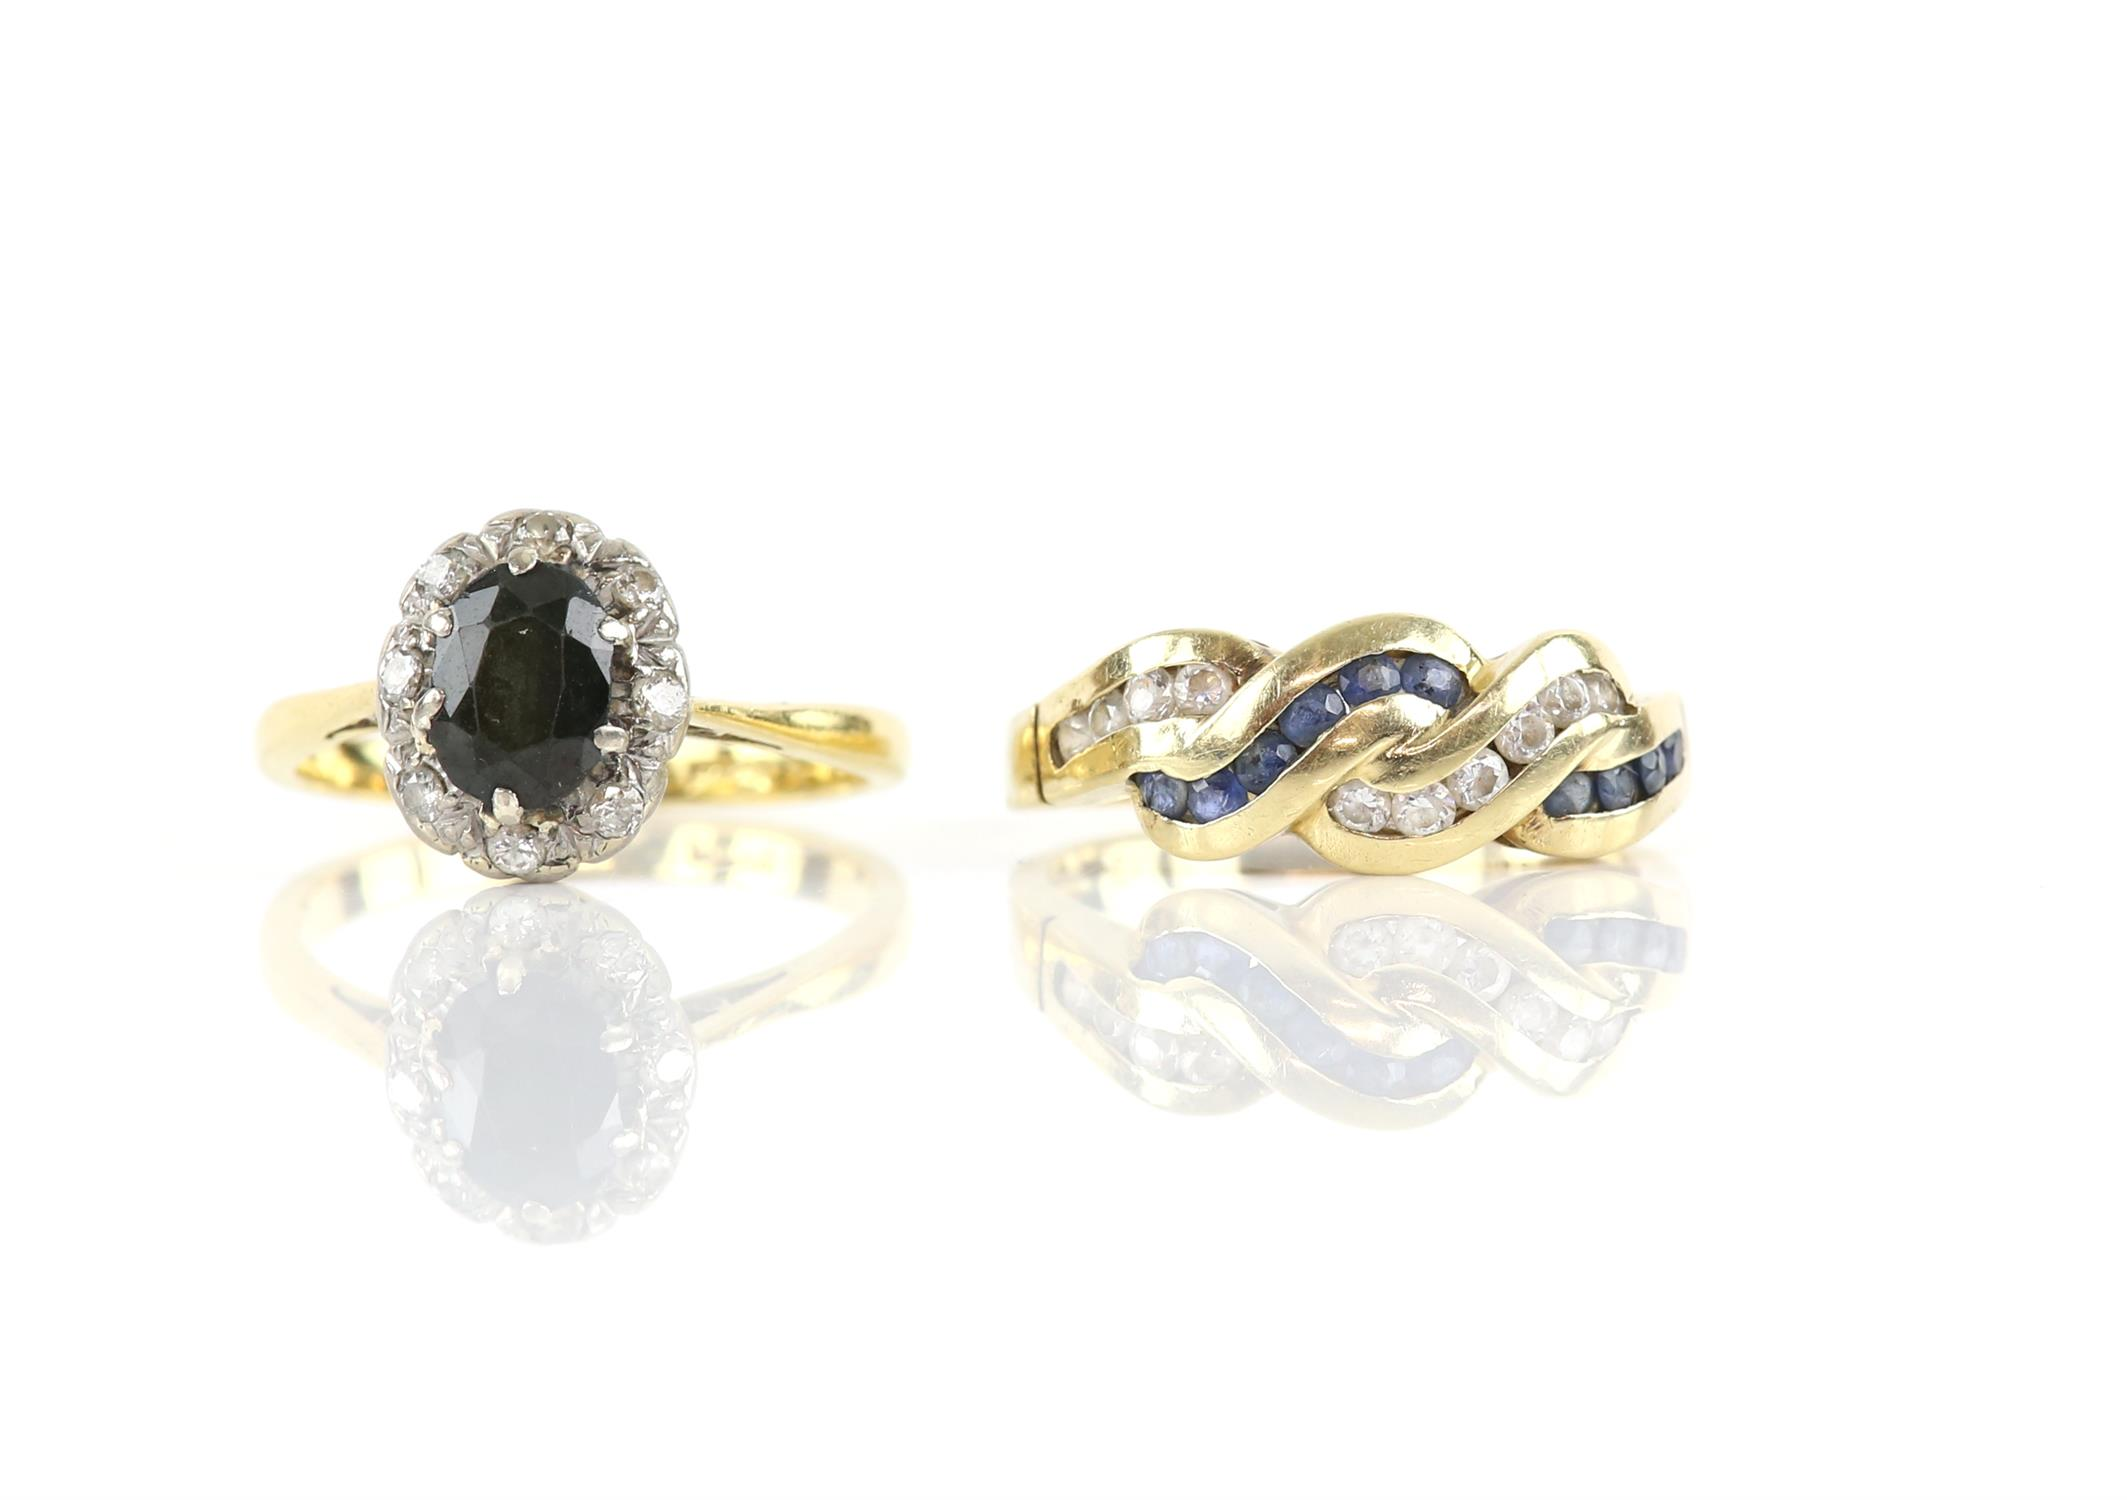 Sapphire and diamond cluster ring, oval cut sapphire, surrounded by round brilliant cut diamonds,